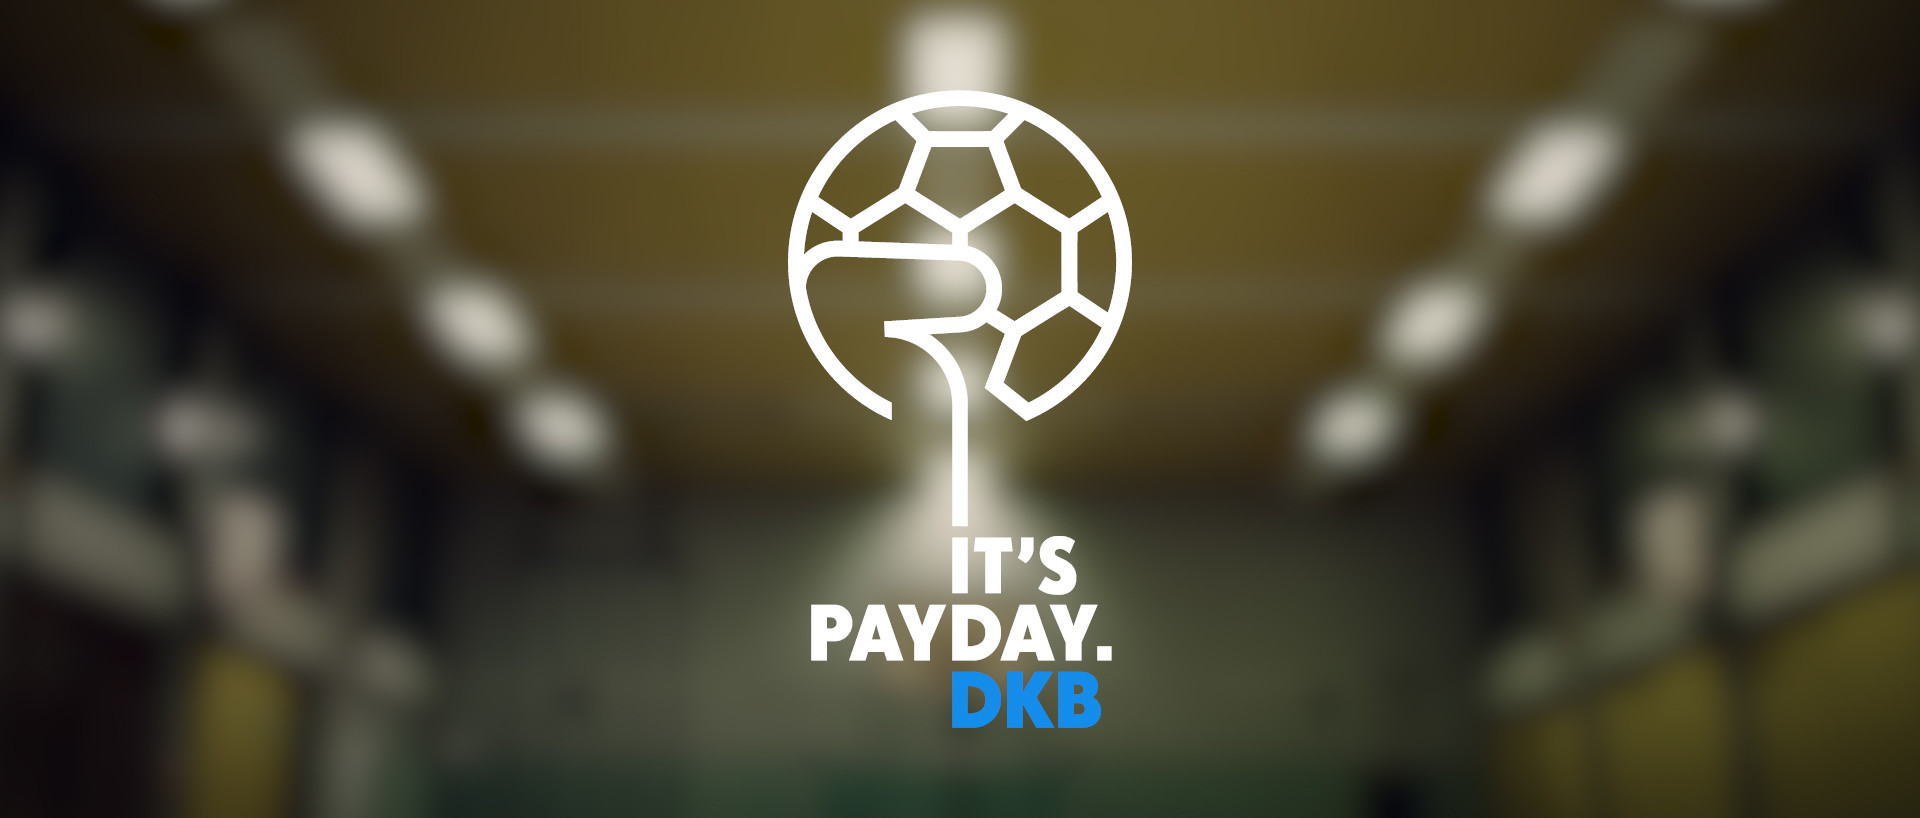 EDITUDE PICTURES DKB: It's Payday